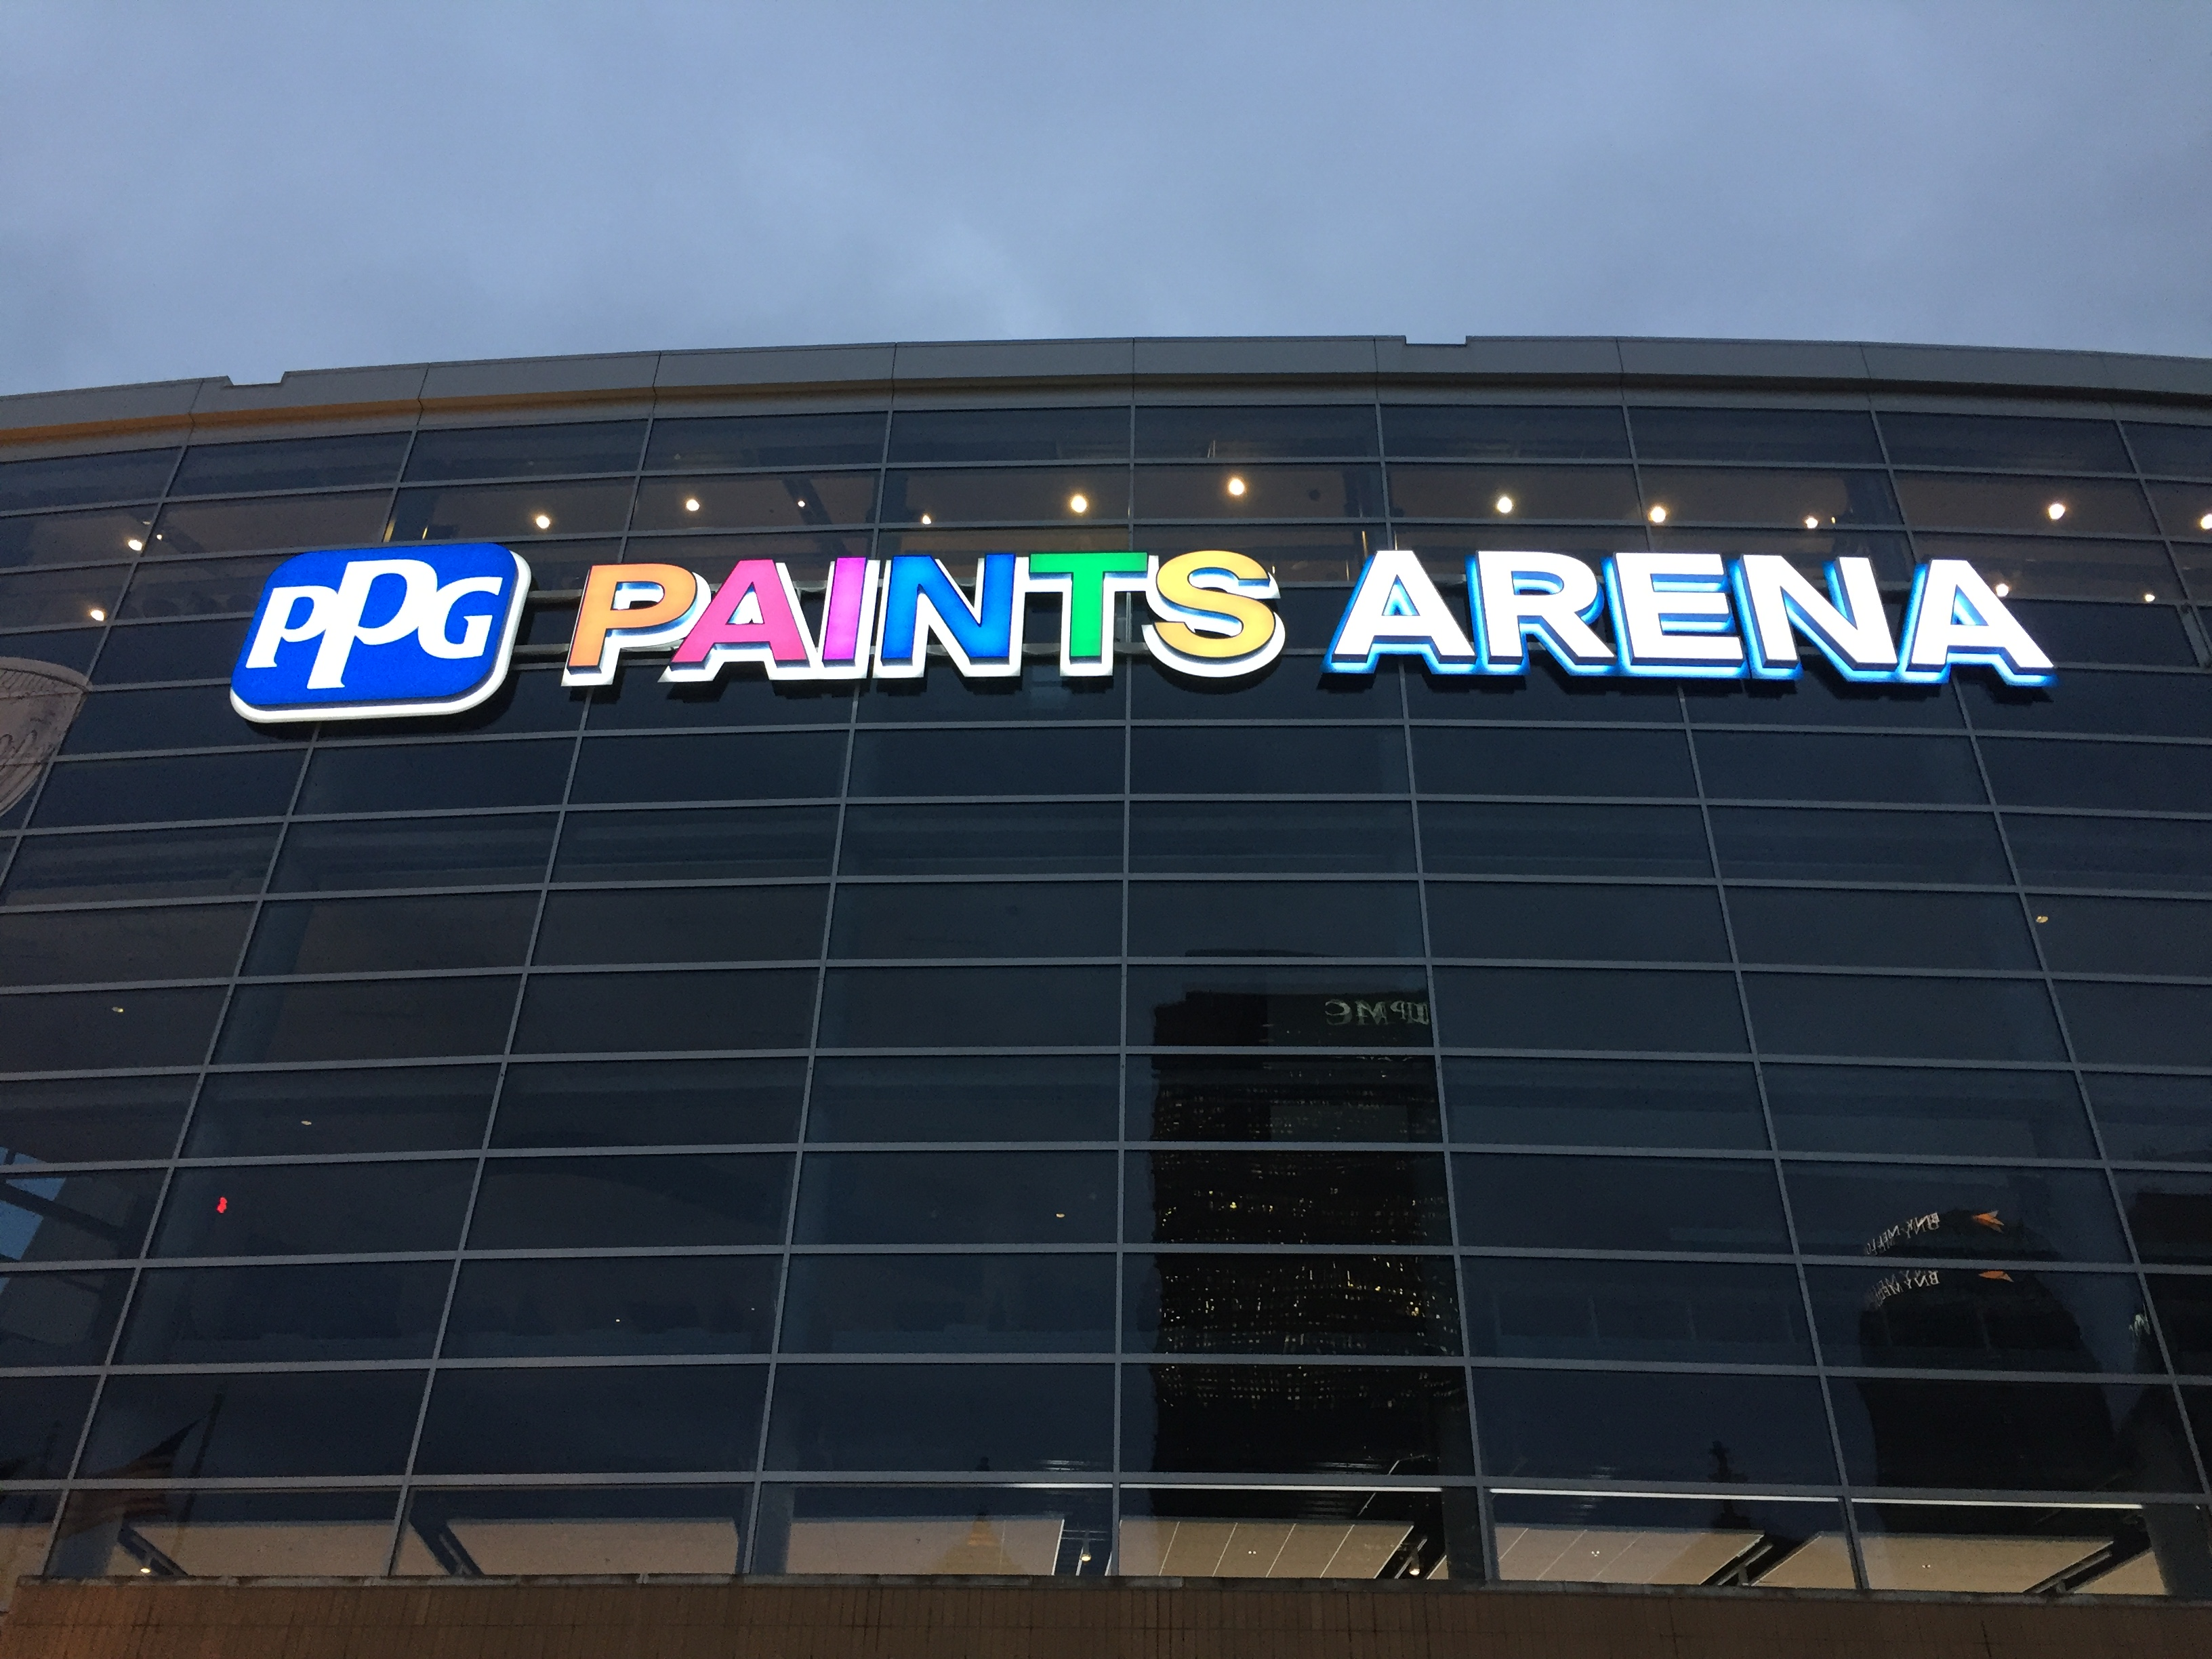 Ppg Paints Arena Gets New Exterior Signage Including Color